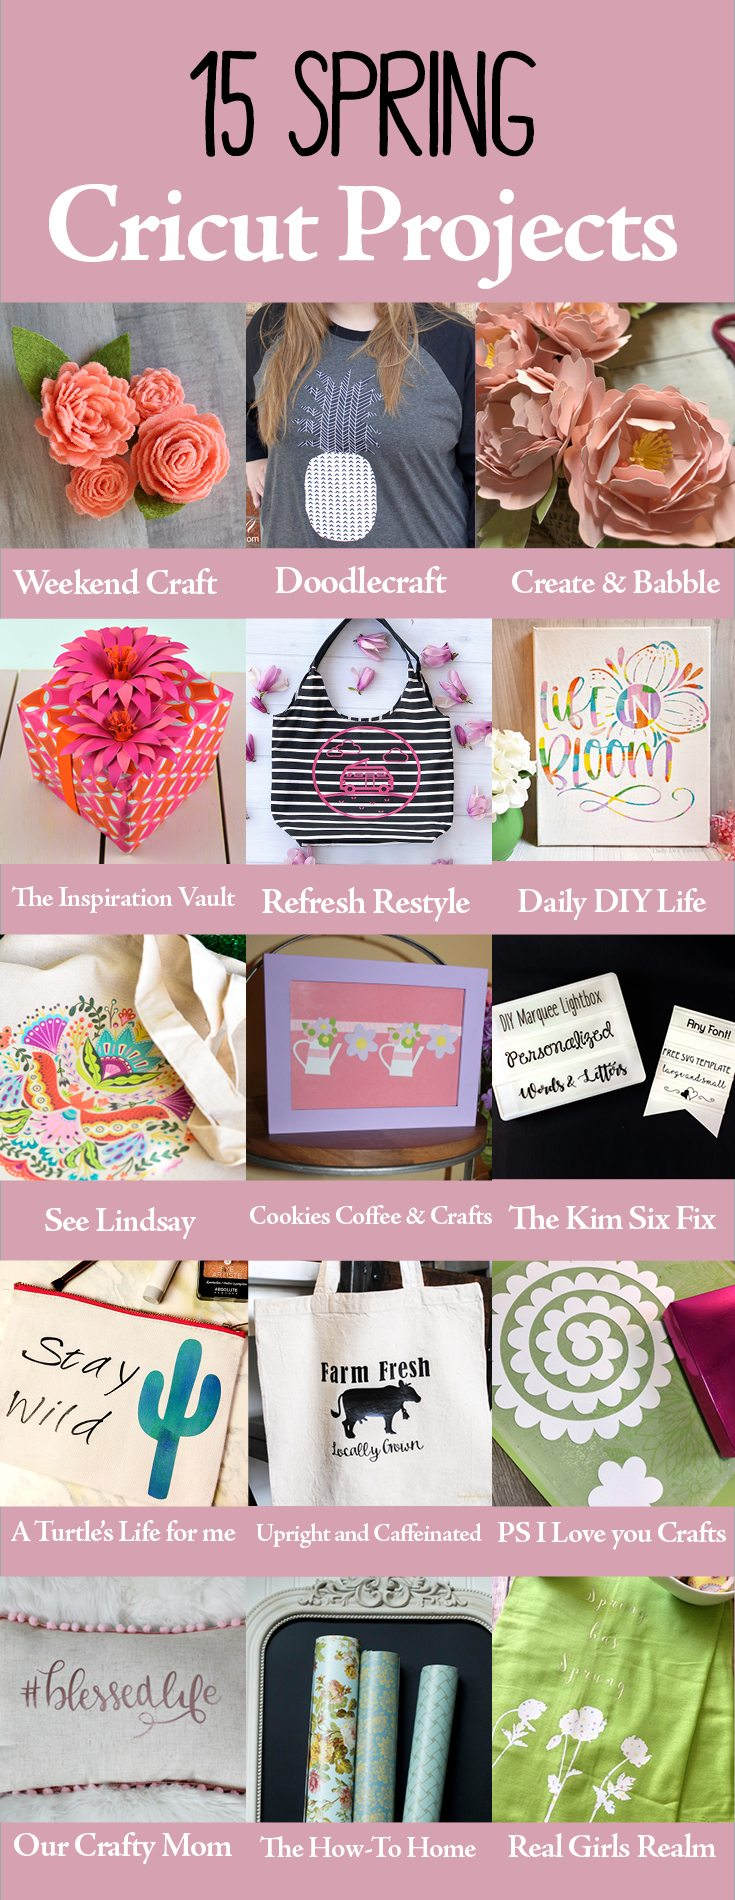 15 Spring Cricut ideas